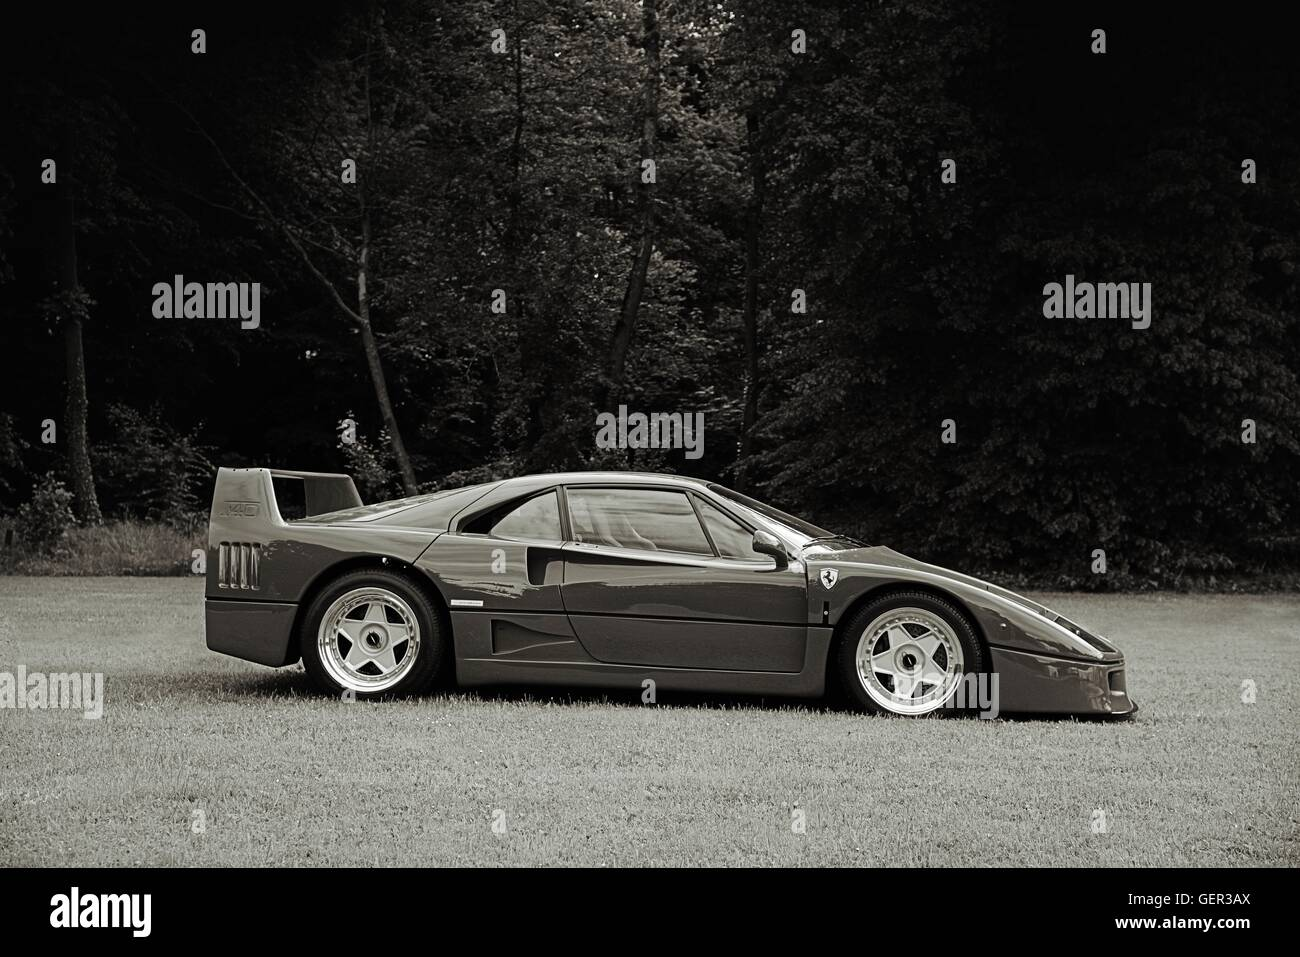 Black And White Side On Shot Of A Ferrari F40 Parked On Grass With Stock Photo Alamy